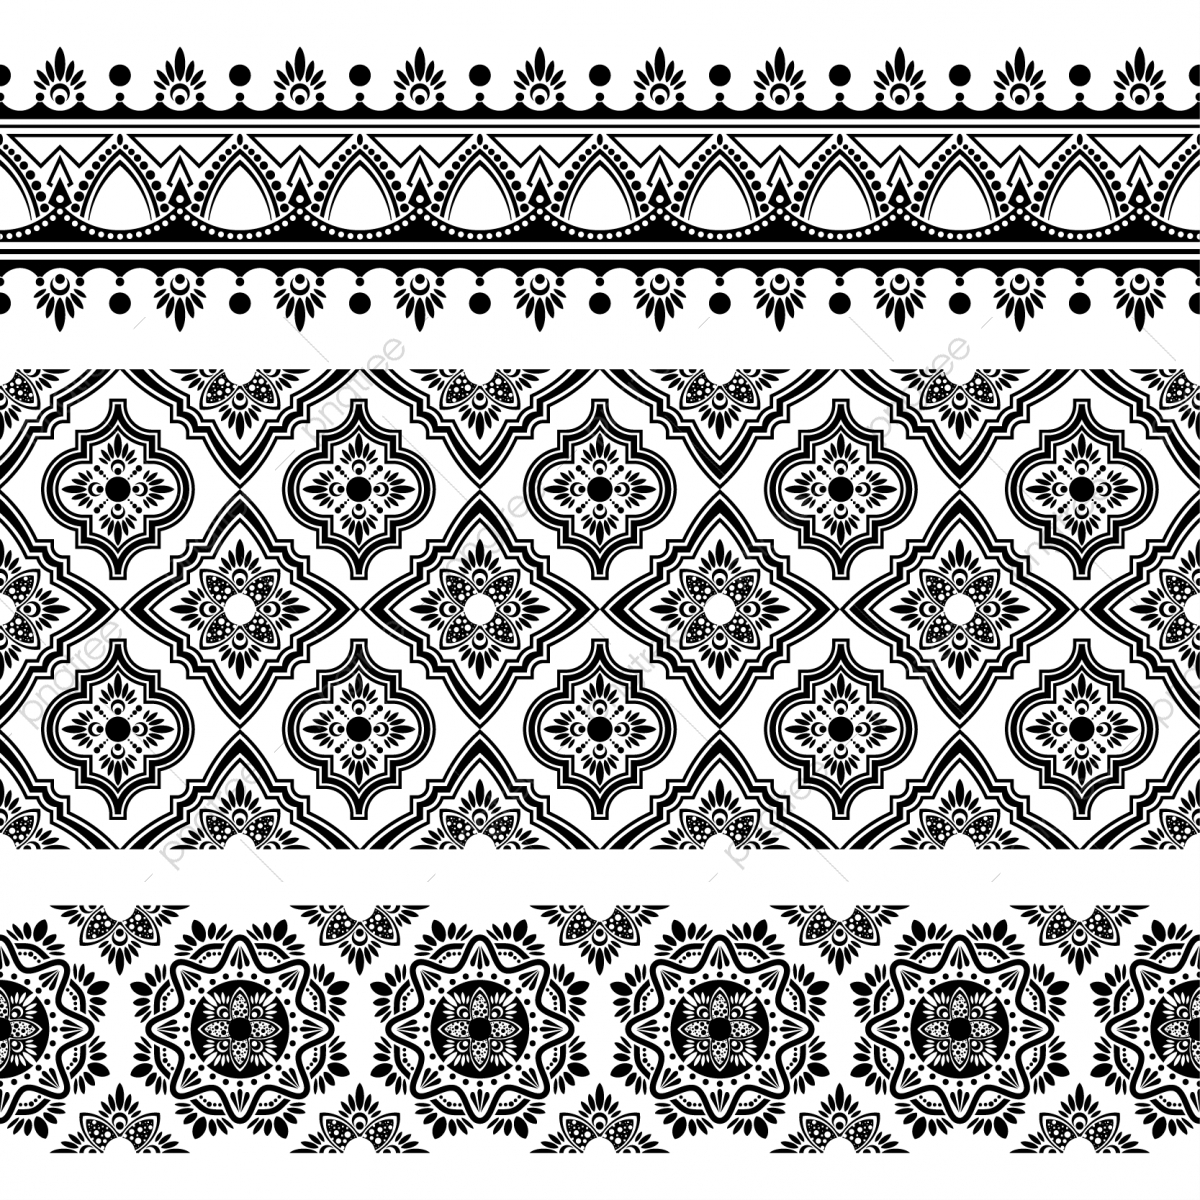 Free clipart turkish tile background black and white. Indian ethnic seamless pattern